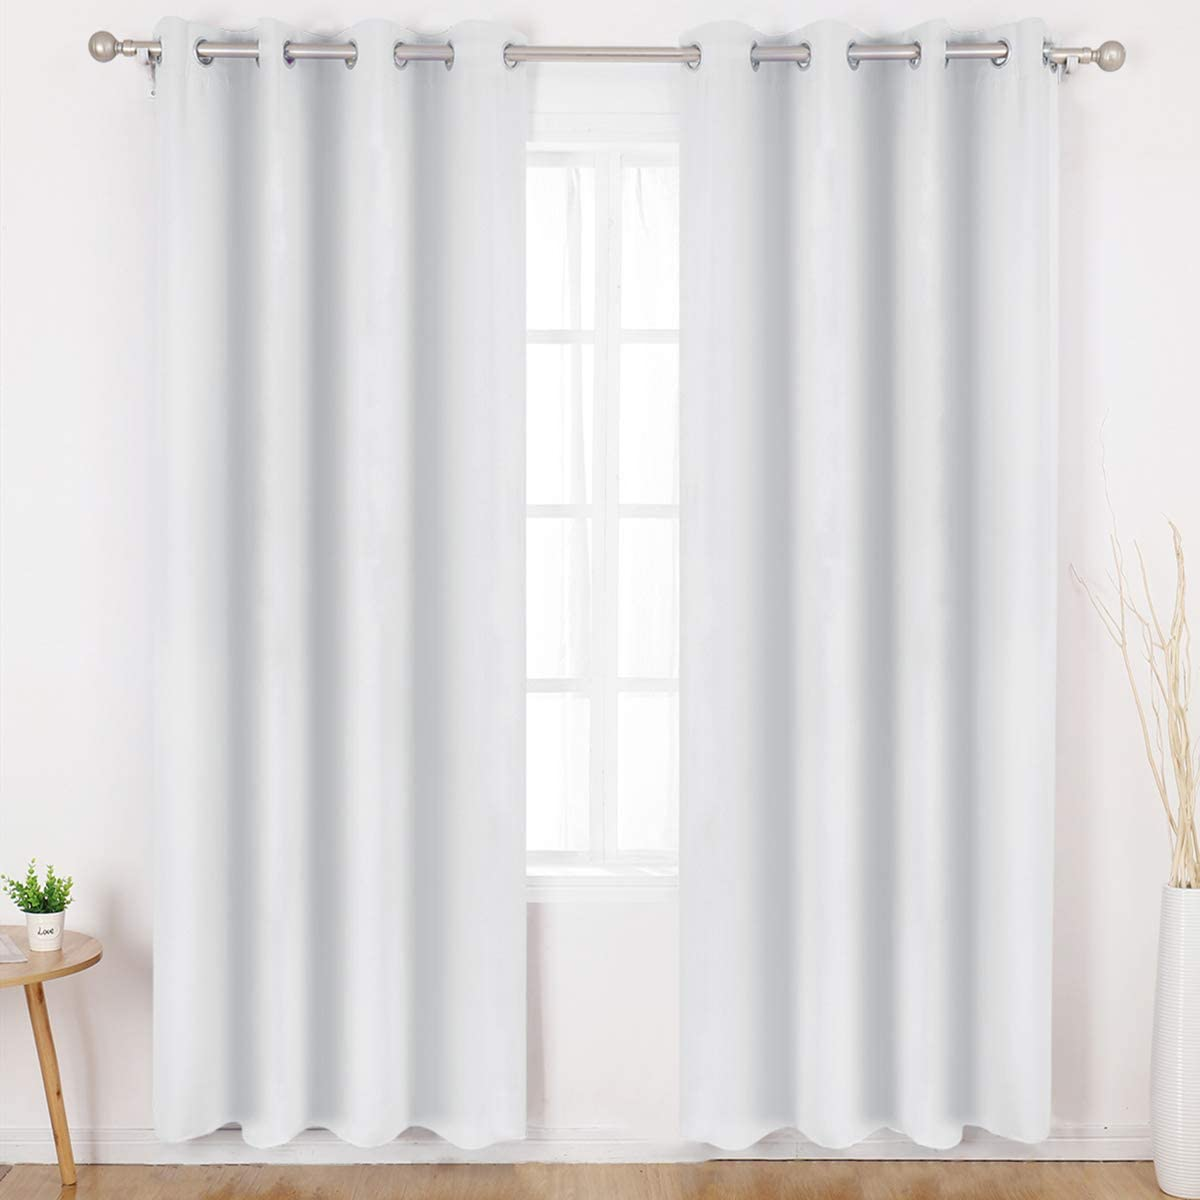 HOMEIDEAS Greyish White Blackout Curtains Wide 52 X 84 inches Long Set of 2 Panels Room Darkening Curtains/Drapes, Thermal Insulated Grommet Window Curtains for Bedroom & Living Room